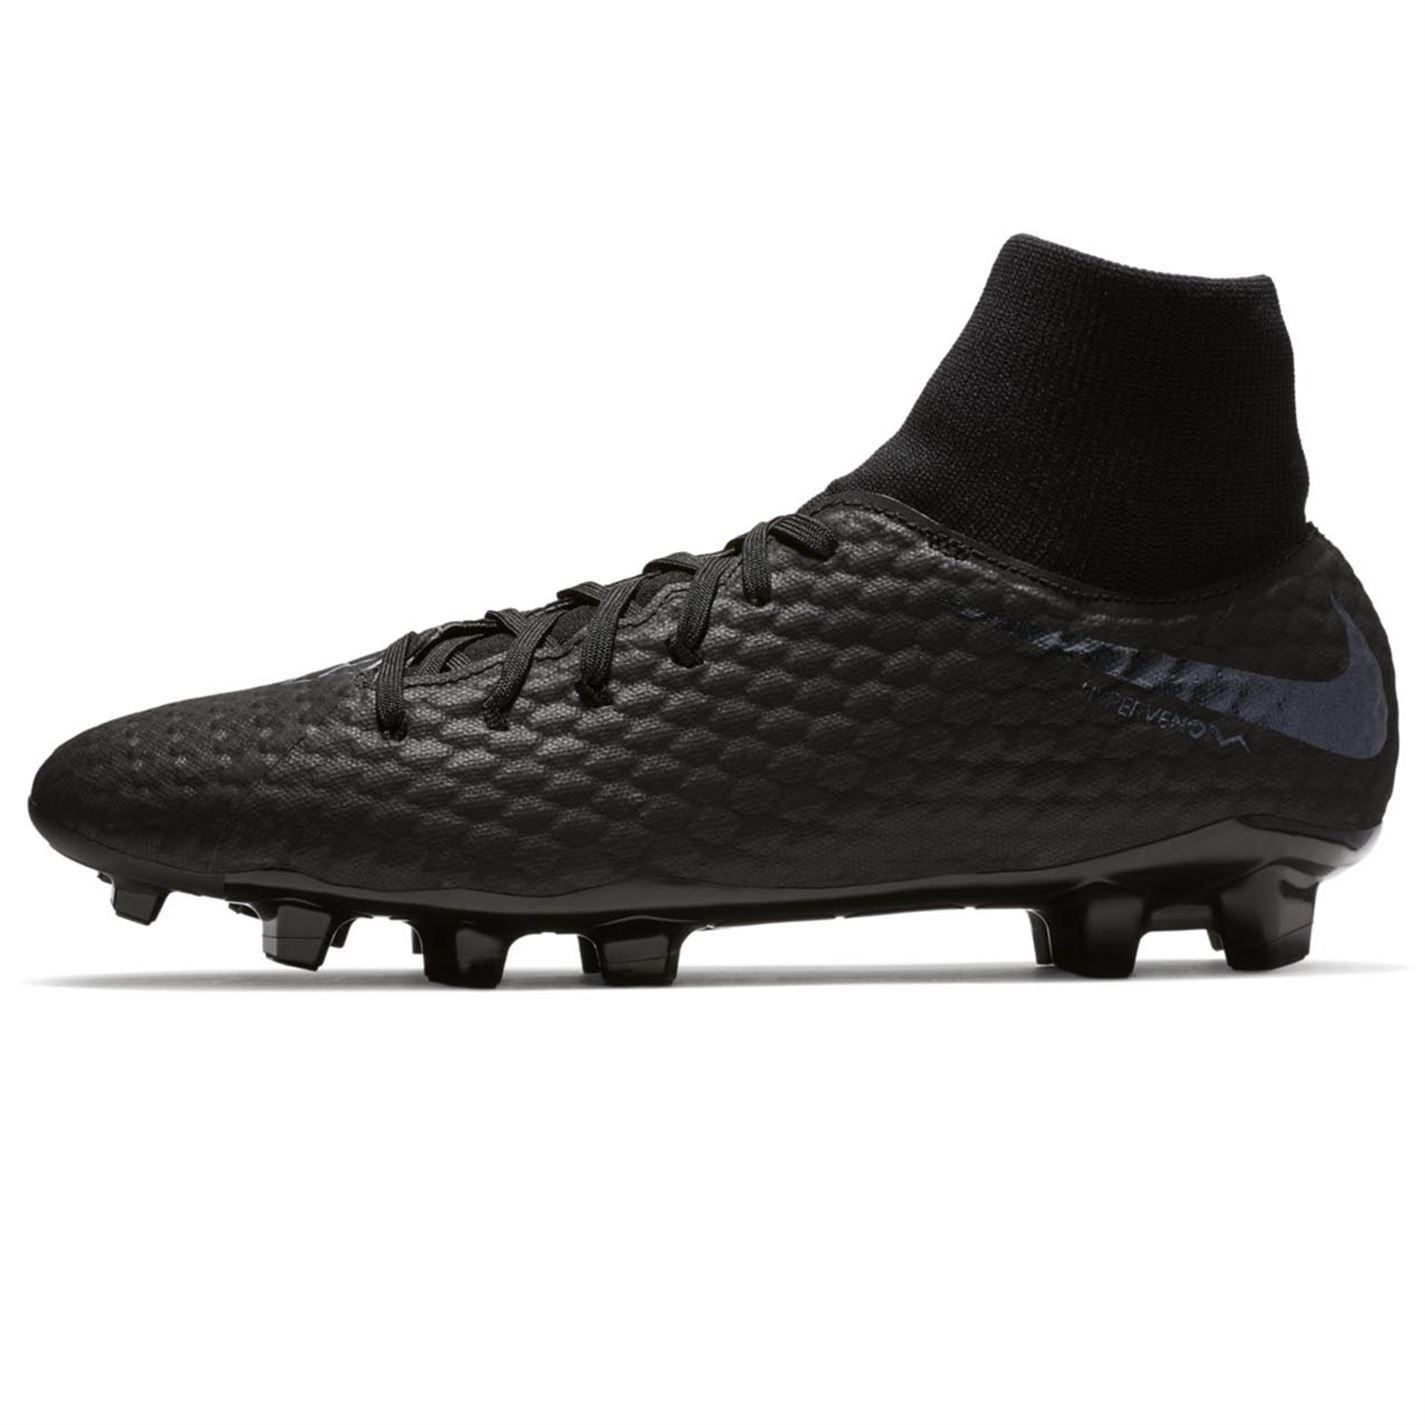 d737fffda ... Nike Hypervenom Phantom Academy DF Firm Ground Football Boots Mens  Soccer Cleats